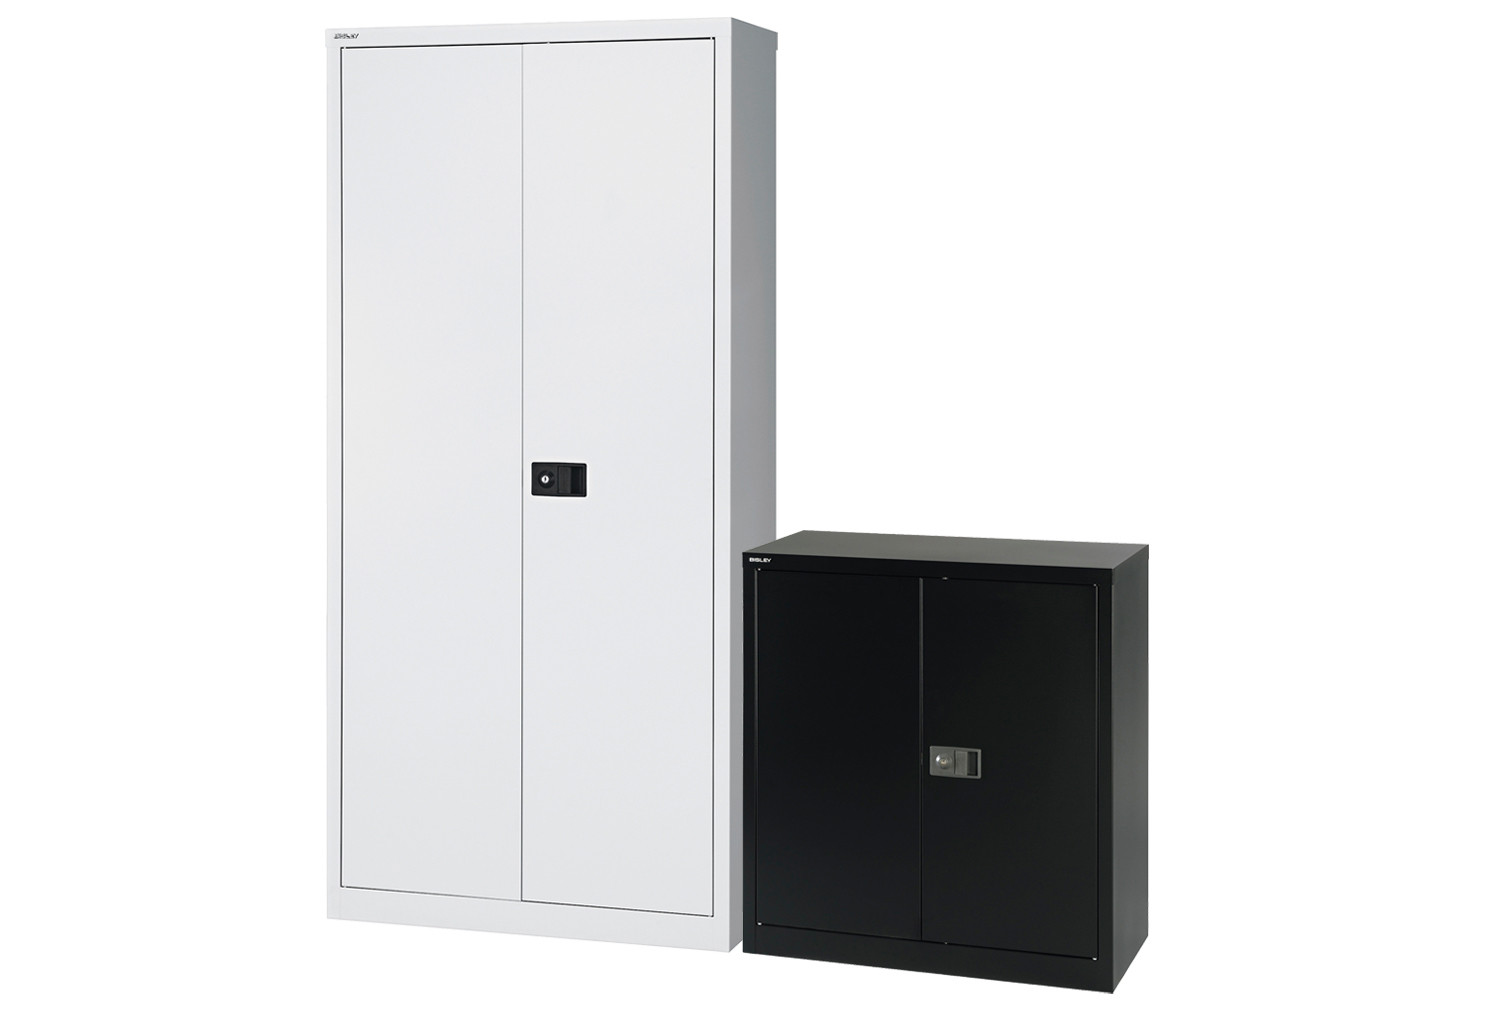 Bisley economy double door steel cupboard